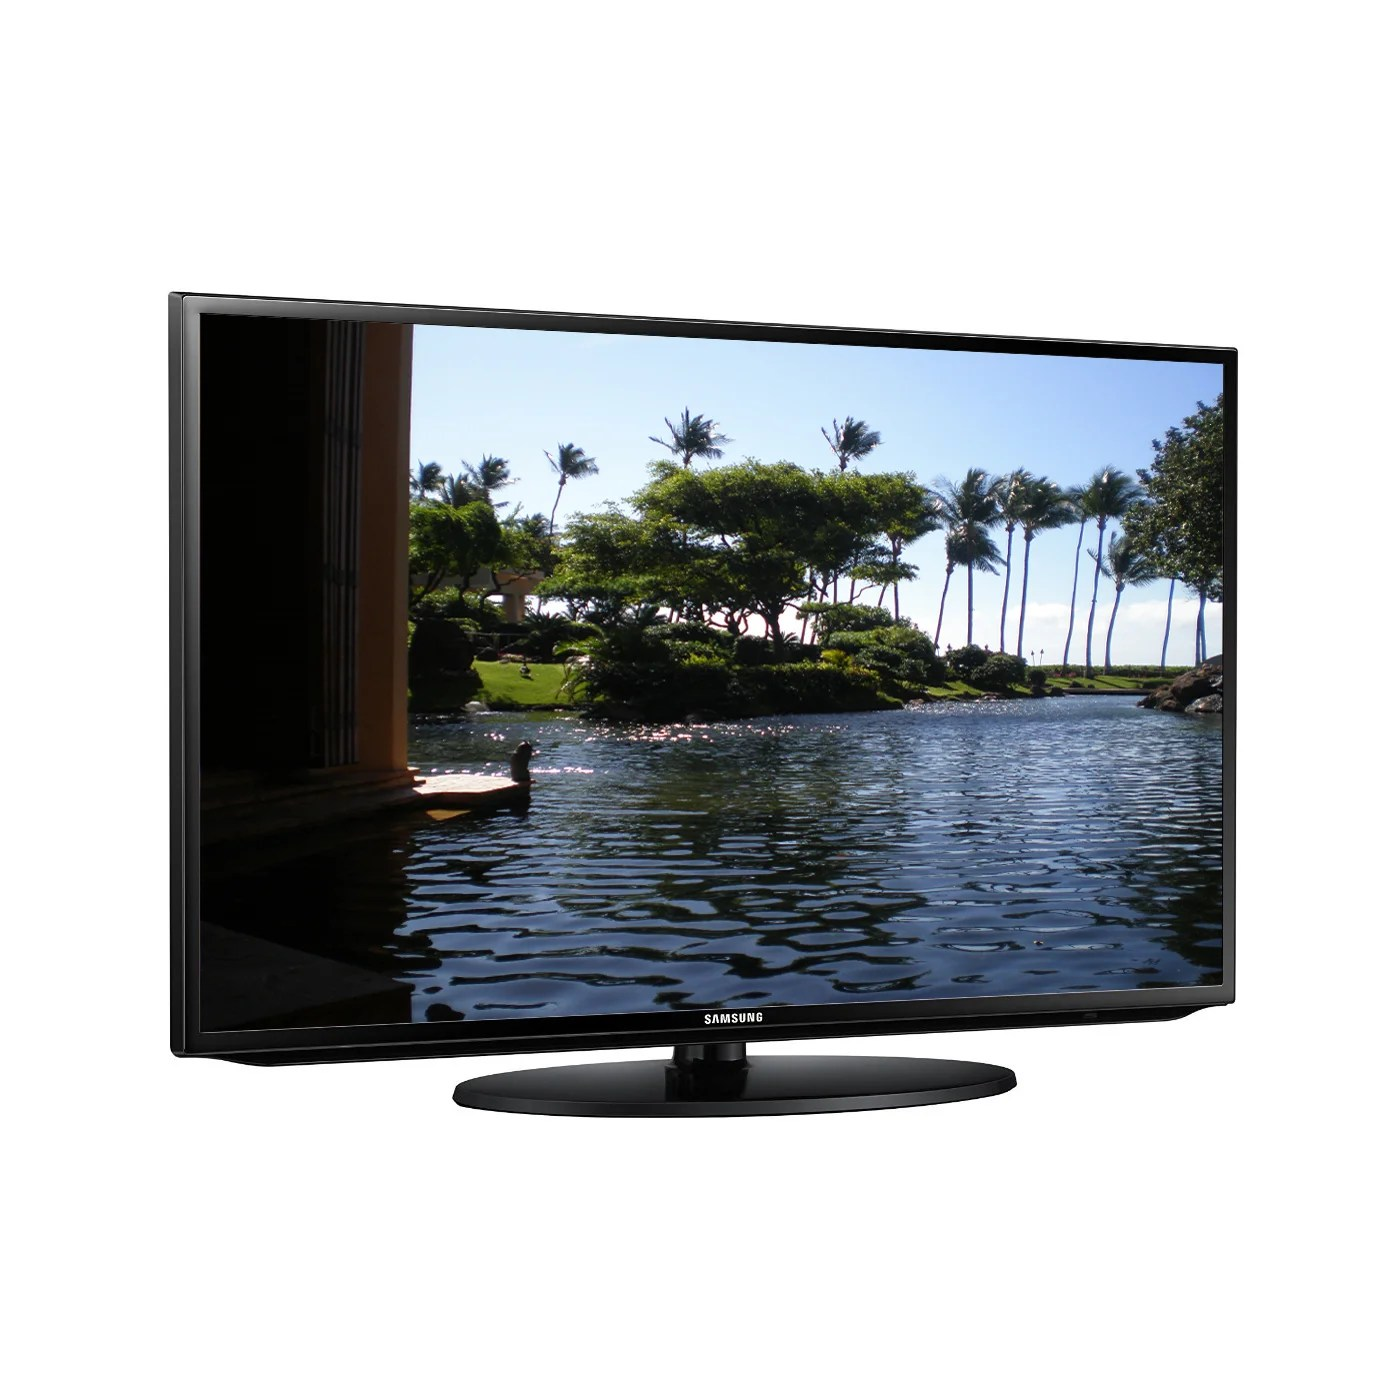 40 Inch Smart Tv Deals Samsung Un40h5203a 40 Inch 1080p 60hz Smart Led Hdtv Refurbished